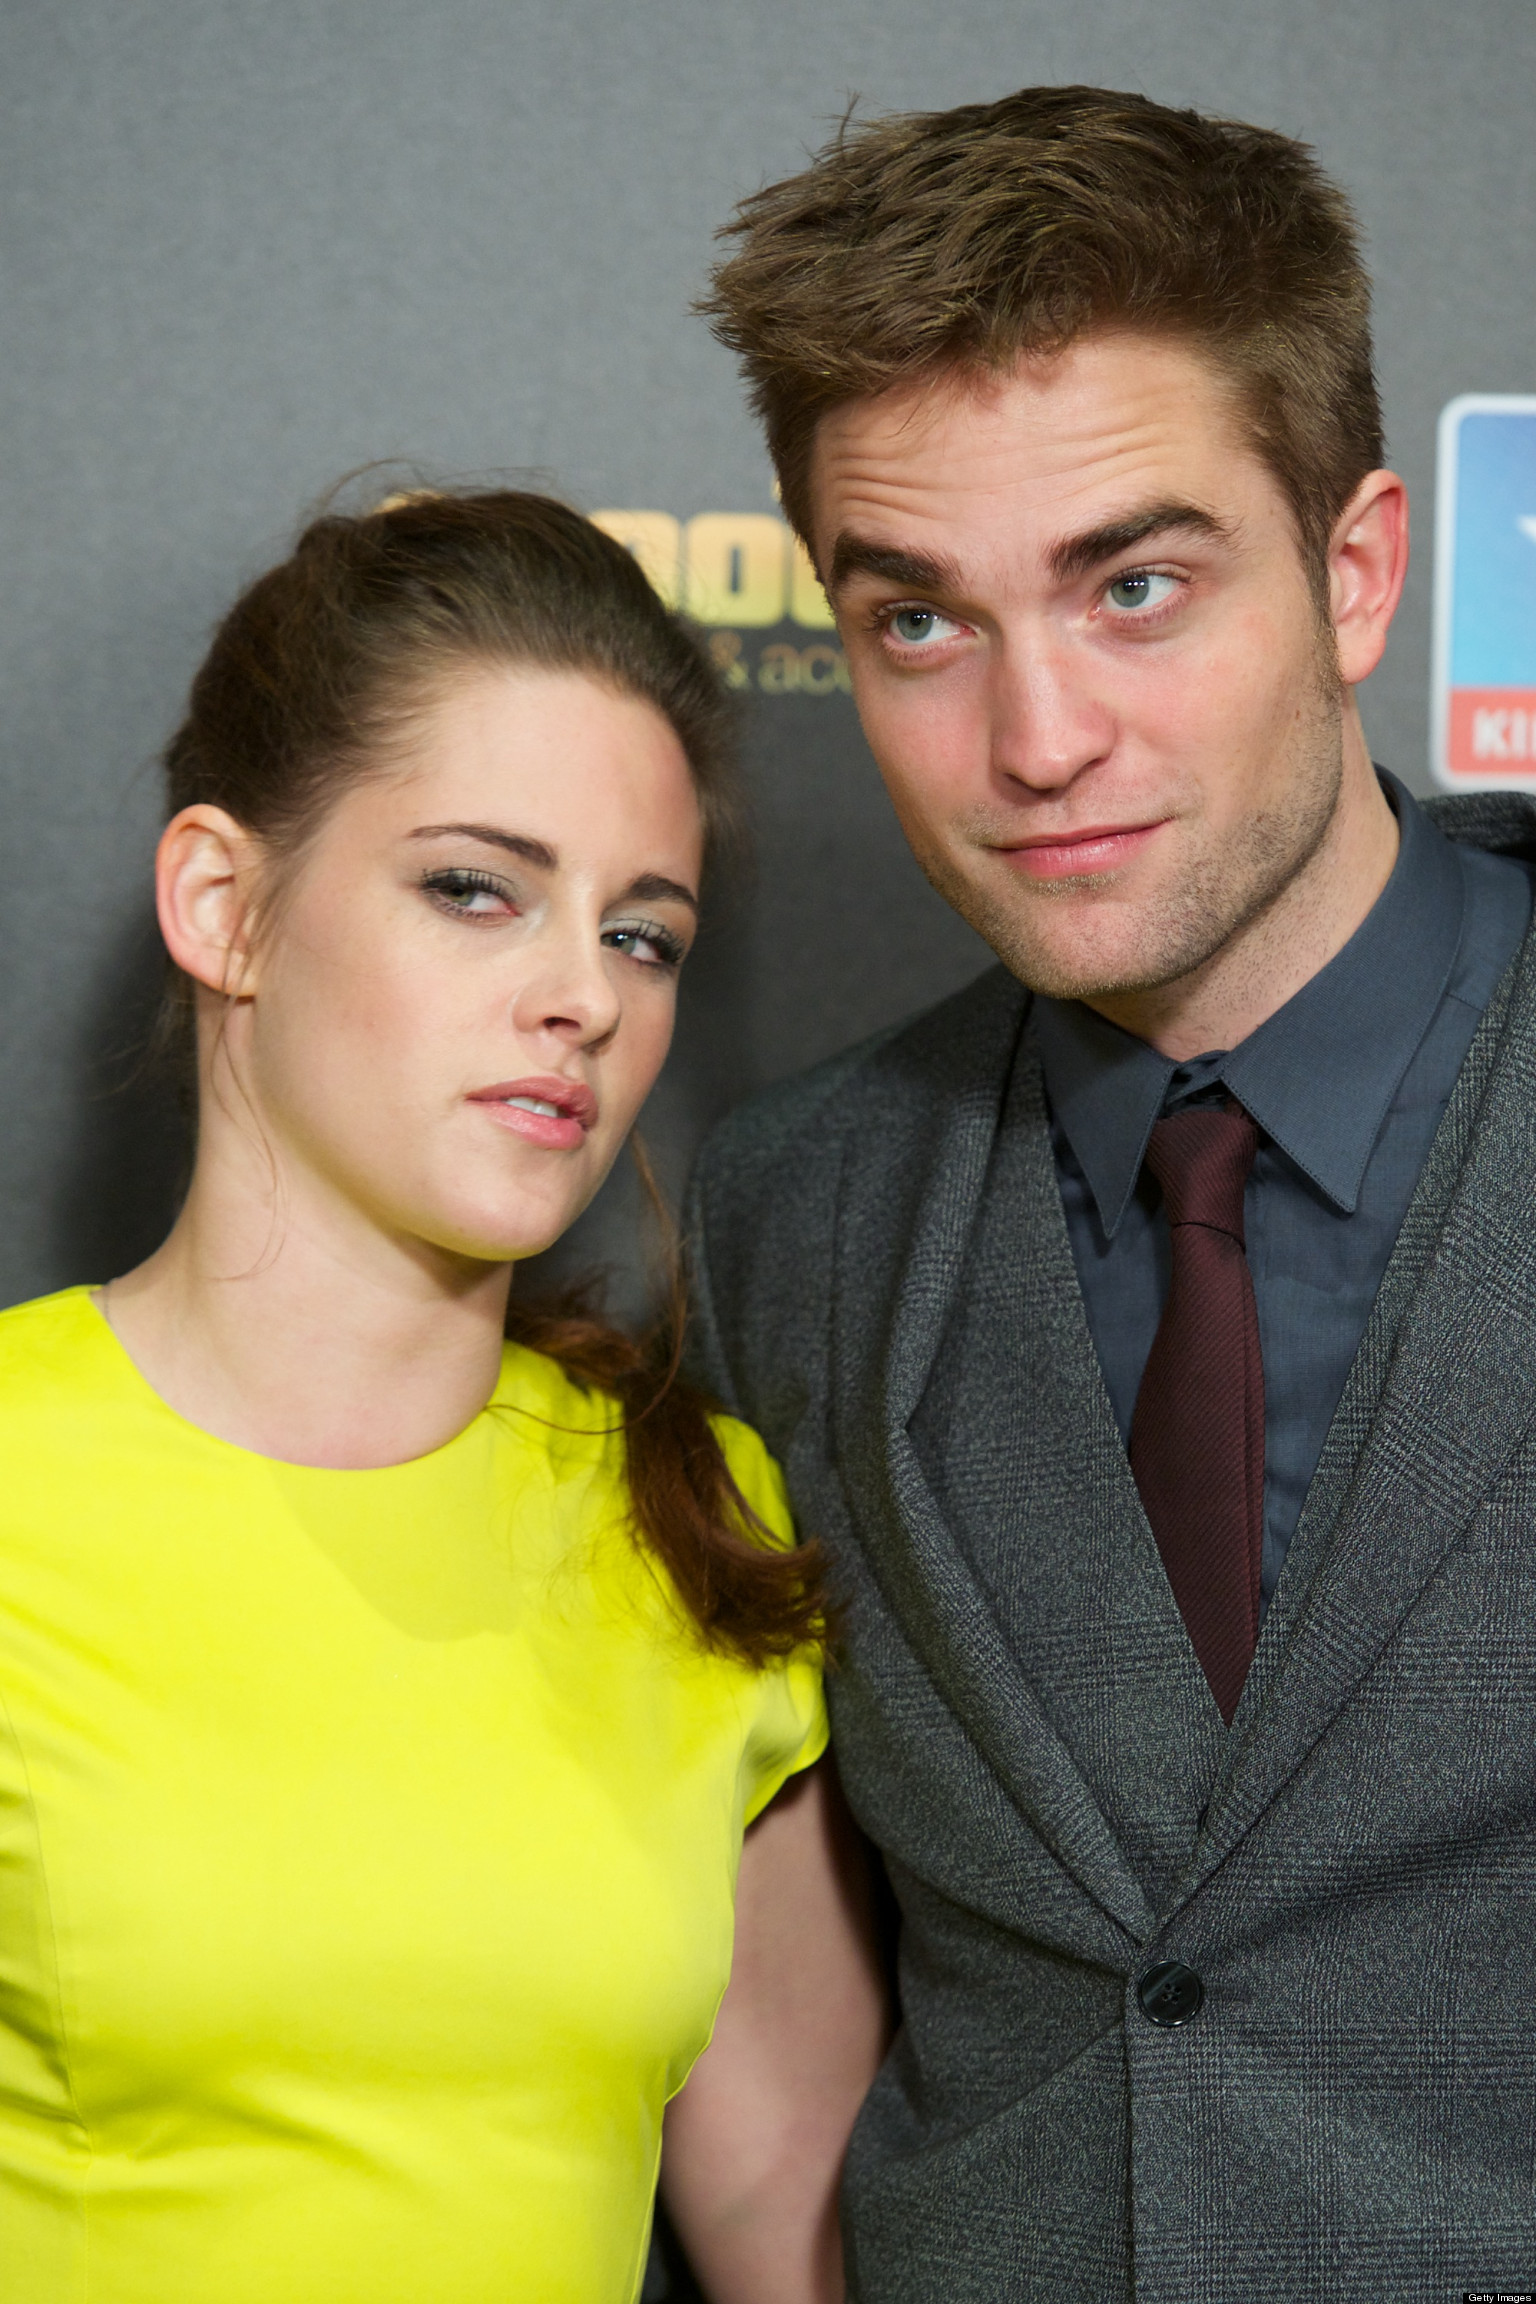 robert pattinson and kristen stewart dating again 2013 When robert pattinson and kristen stewart first got close, stewart was dating actor michael angarano some reports suggested an overlap, with stewart and pattinson being spotted holding hands just a week before angarano came to visit stewart on the twilight (2008) set.